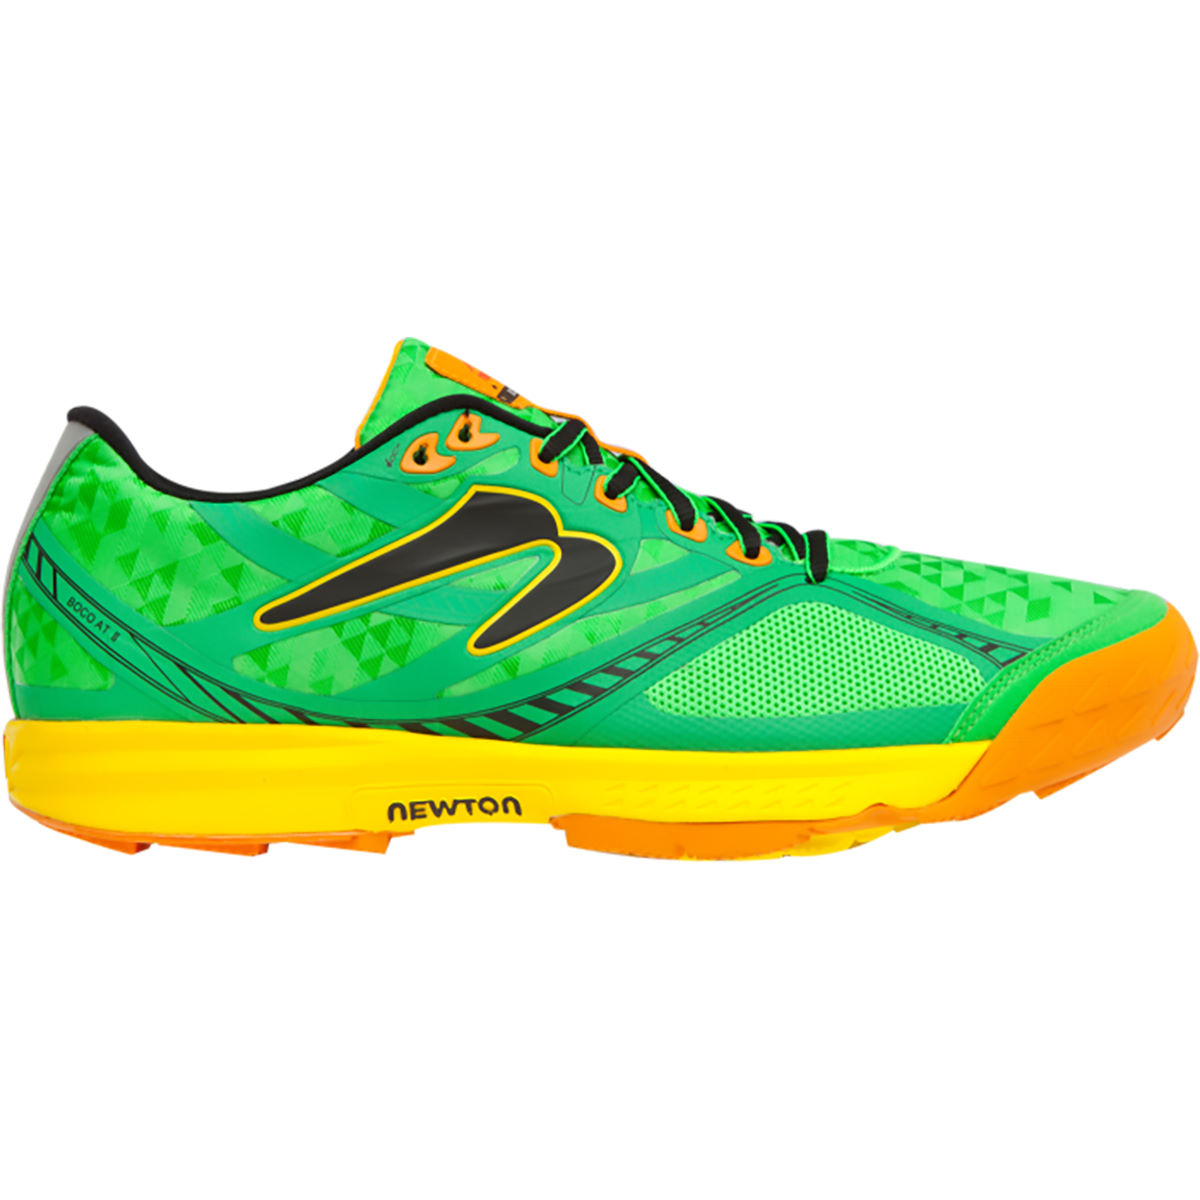 Chaussures Newton Running Boco AT II (AH16) - 11,5 UK Green/Yellow Chaussures de running trail